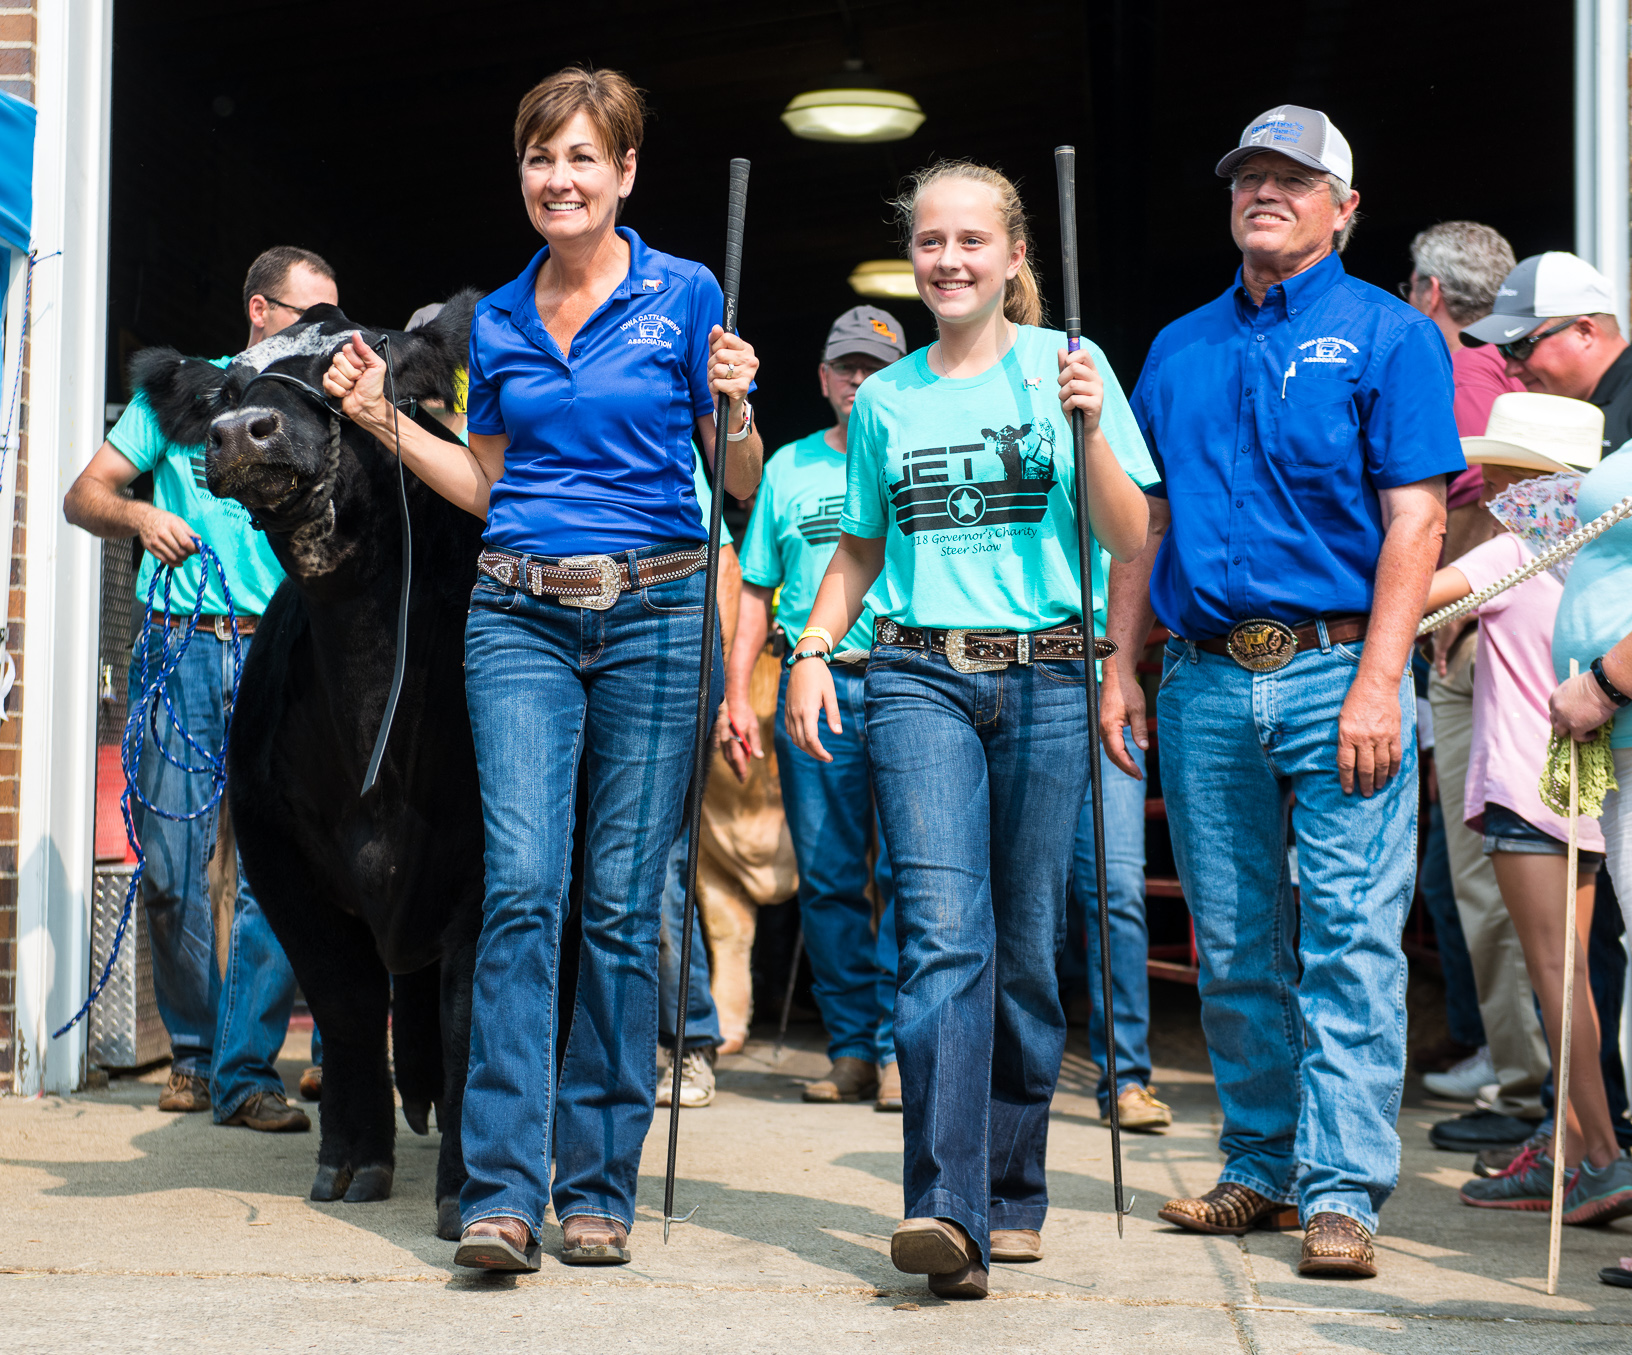 Governor Kim Reynolds and Tyler Pudenz lead Jet out of the livestock barn during the parade to the Governor's Steer Show. Pudenz said she usually doesn't get nervous until she enters the ring before a show. Photo credit: Joseph L. Murphy/Iowa Soybean Association